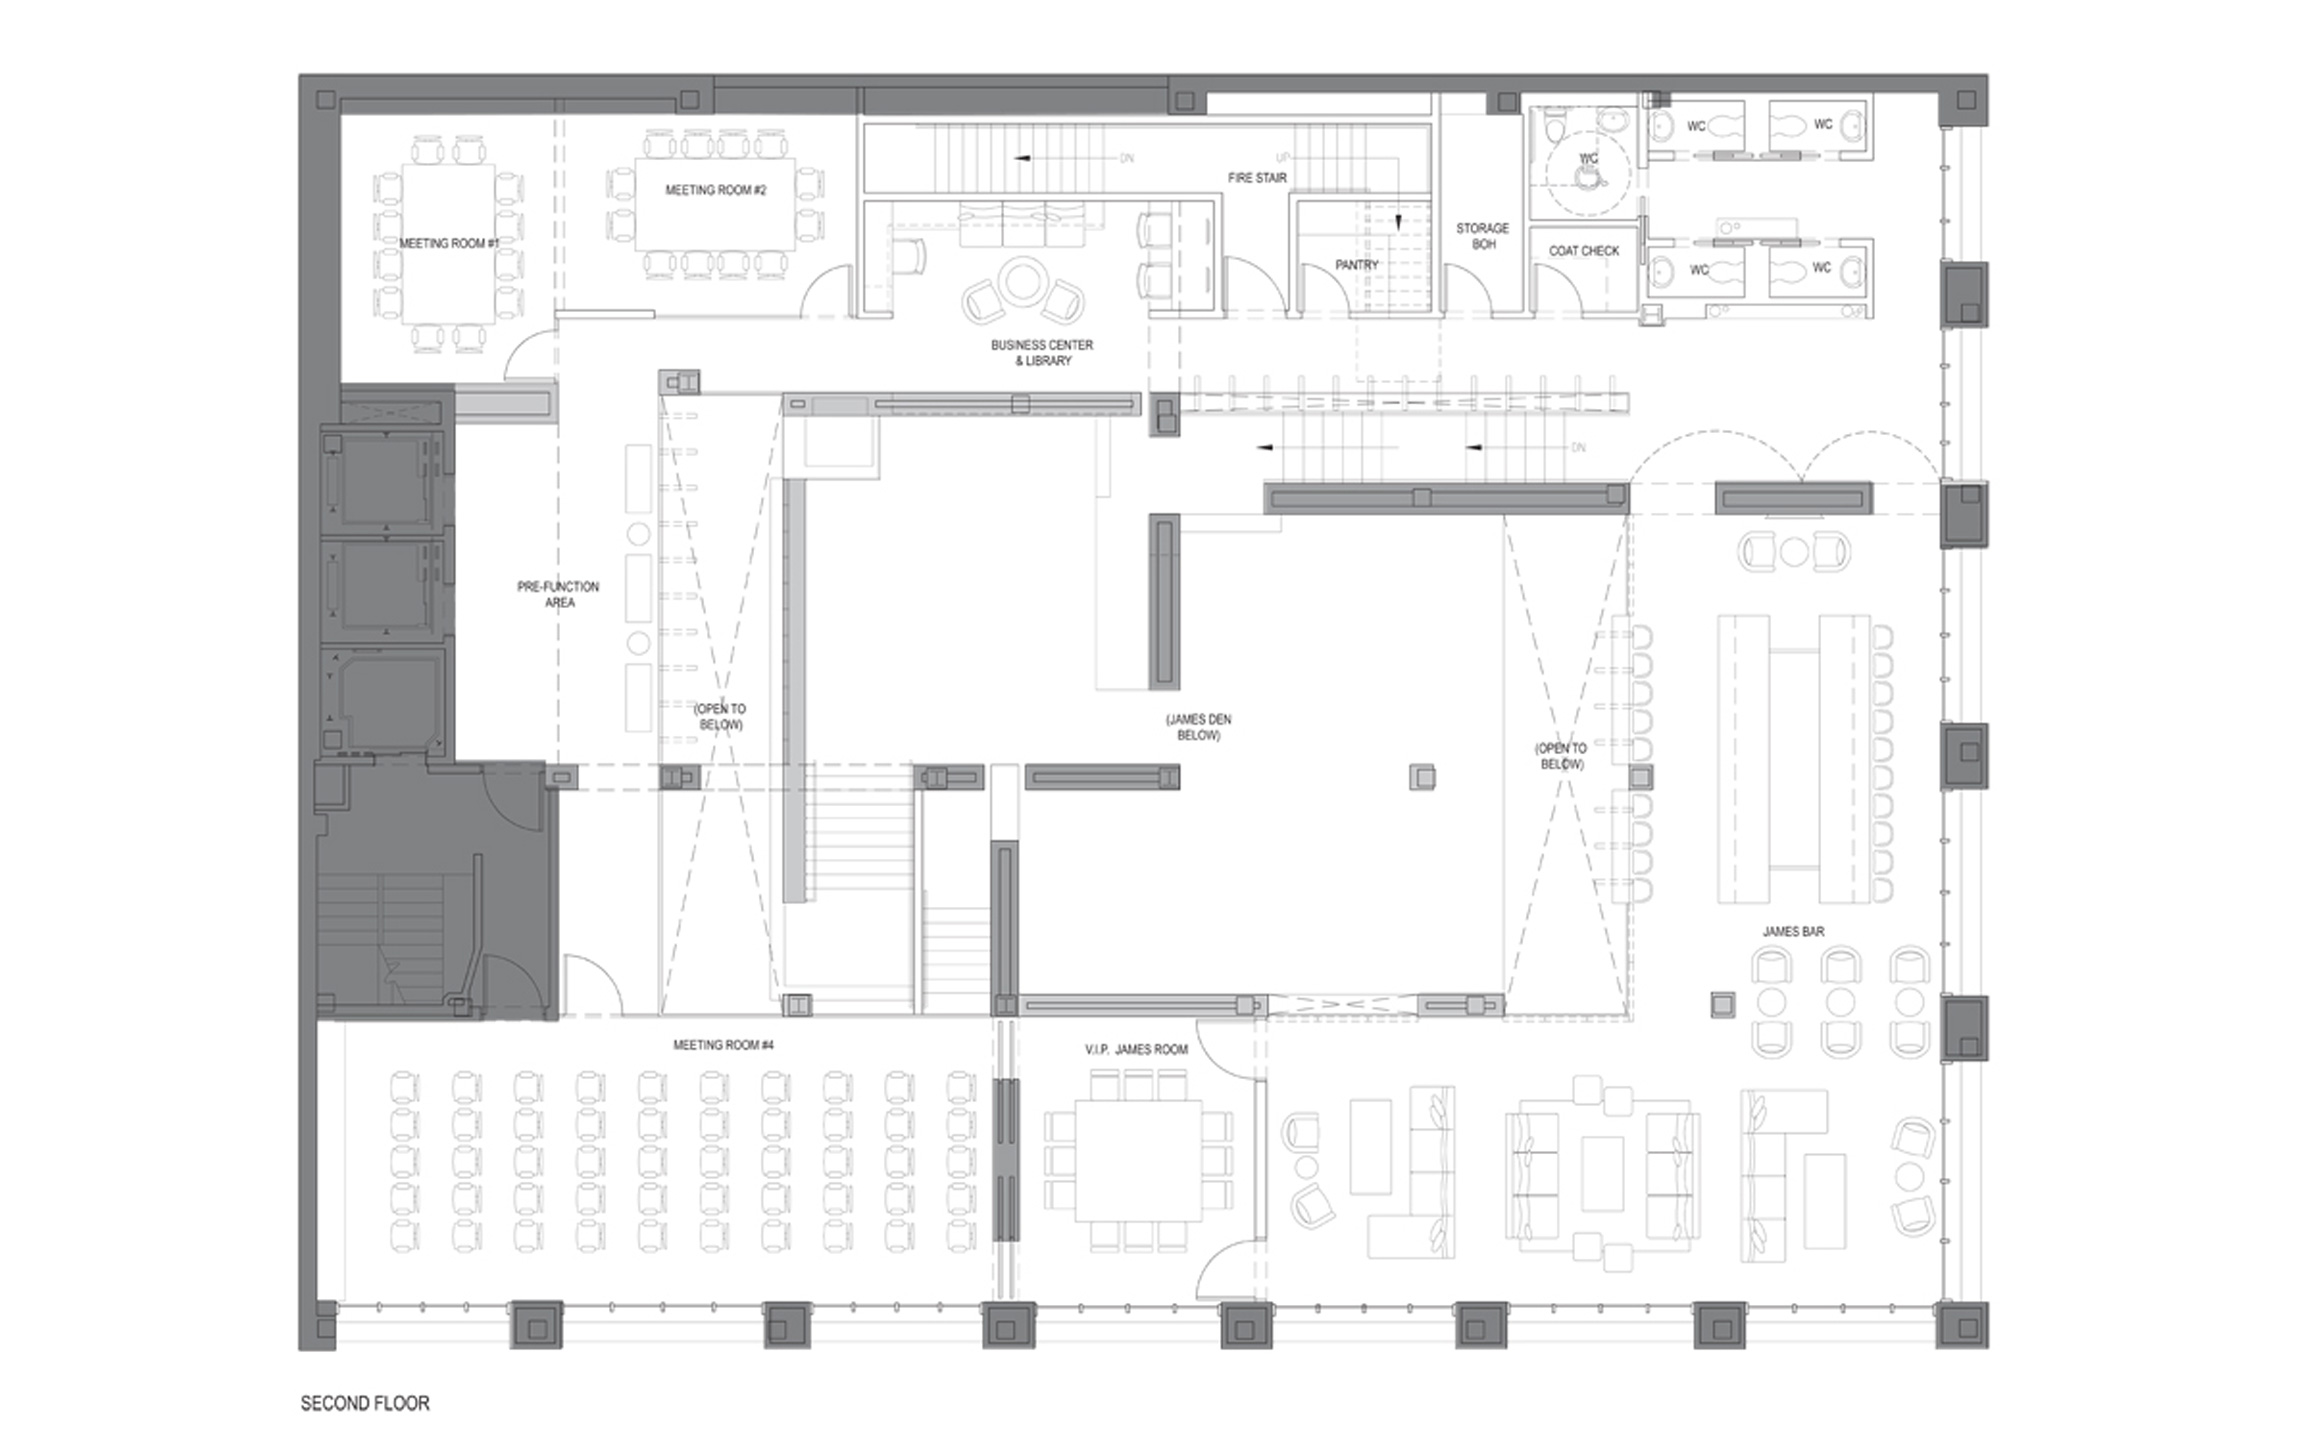 Second Floor Plan, Bar & Meeting